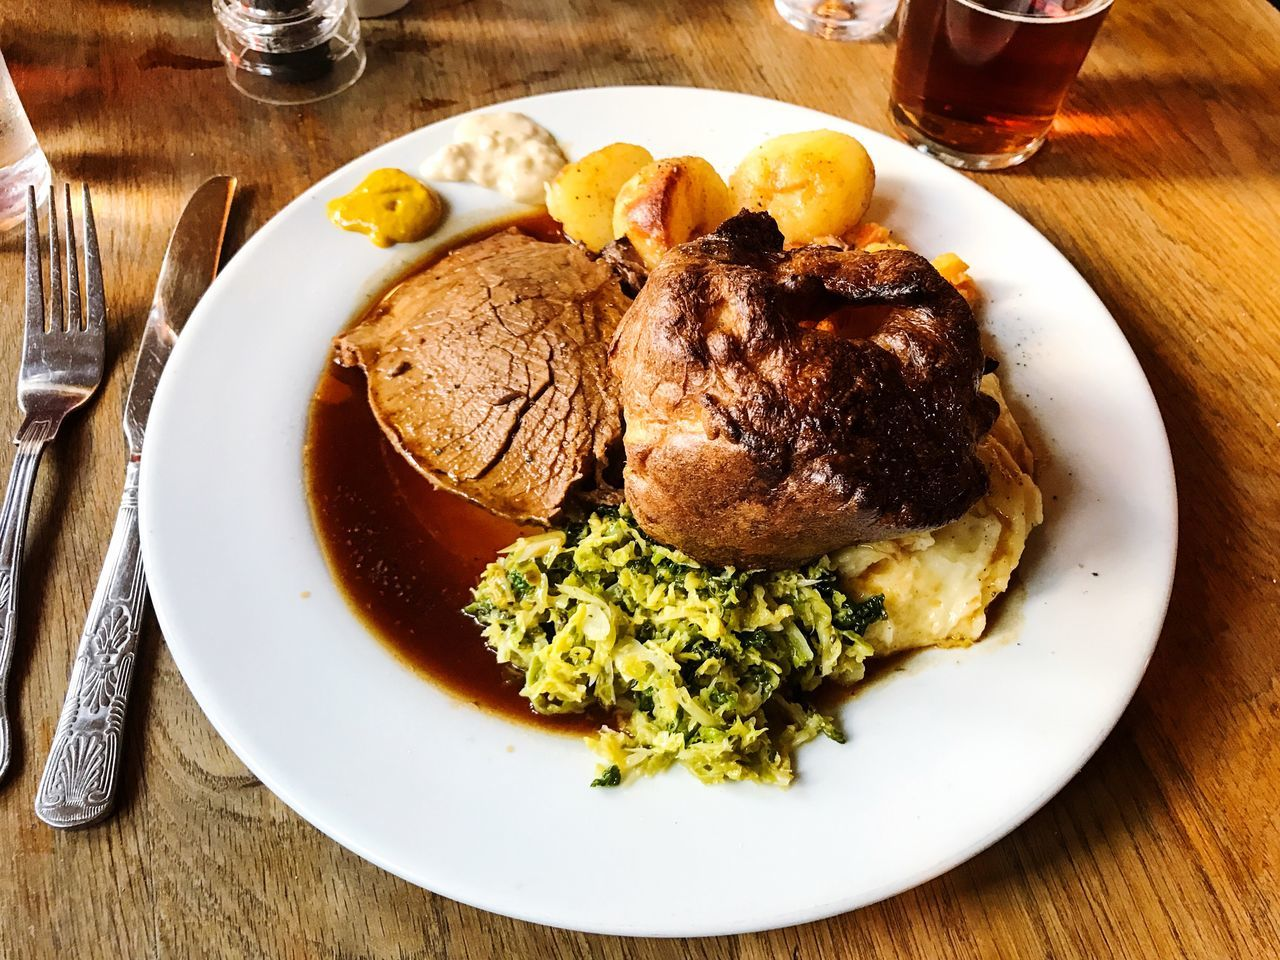 Roast beef Sunday lunch in Weardale, County Durham, England. Photo by Tom Bland. Food And Drink Plate Food Ready-to-eat Indoors  Indulgence Temptation Table England IPhoneography IPhone Roast Beef Sunday Lunch Pub British Food Traditional English Food Classic Cuisine British English Pub Lunch Lunch Beef Yorkshire Pudding